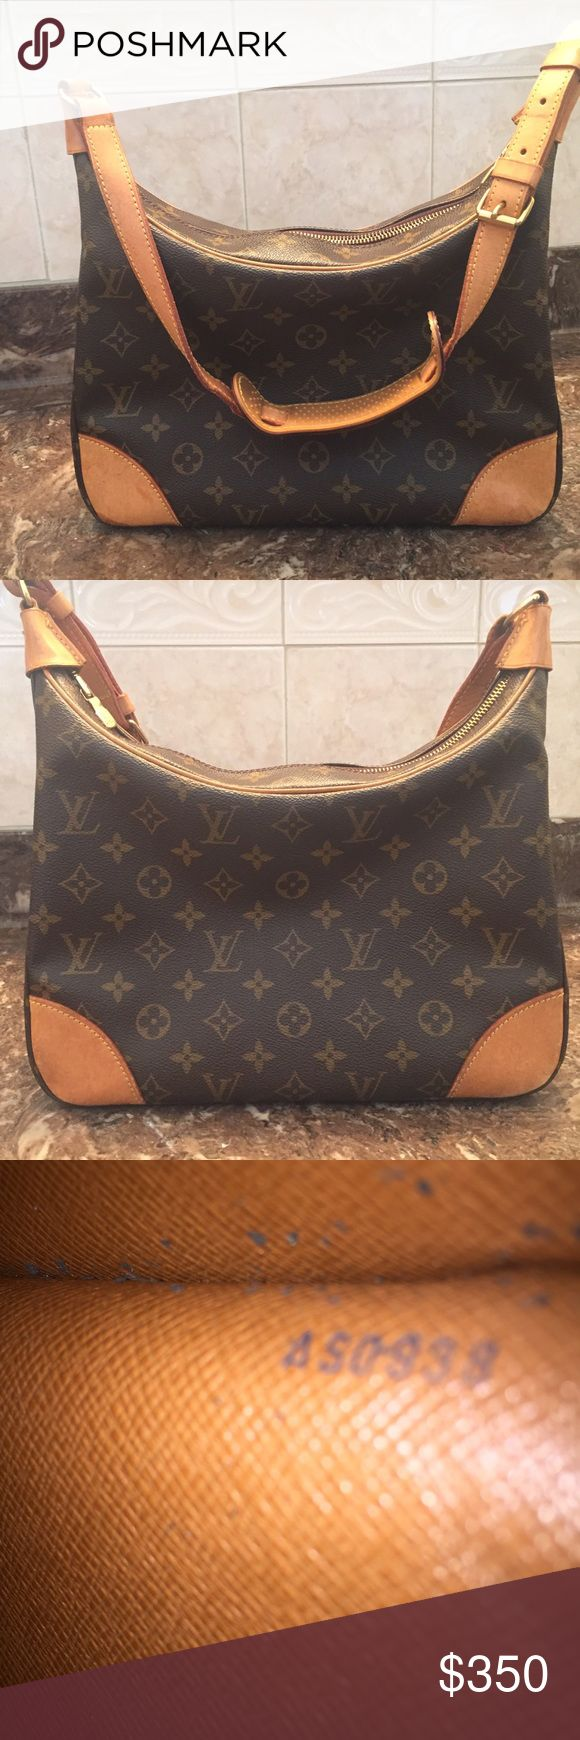 Louis Vuitton Boulogne purse PRICE IS FIRM!!!!! 100% Authentic in very good condition. The inside pocket is a bit sticky. NO TRADES NO LOW BALLERS!!! I do not answer silly questions! All info you need has been provided. Remember ppl its a Louis Vuitton not a Coach 😉 made in France 🇫🇷 Louis Vuitton Bags Shoulder Bags